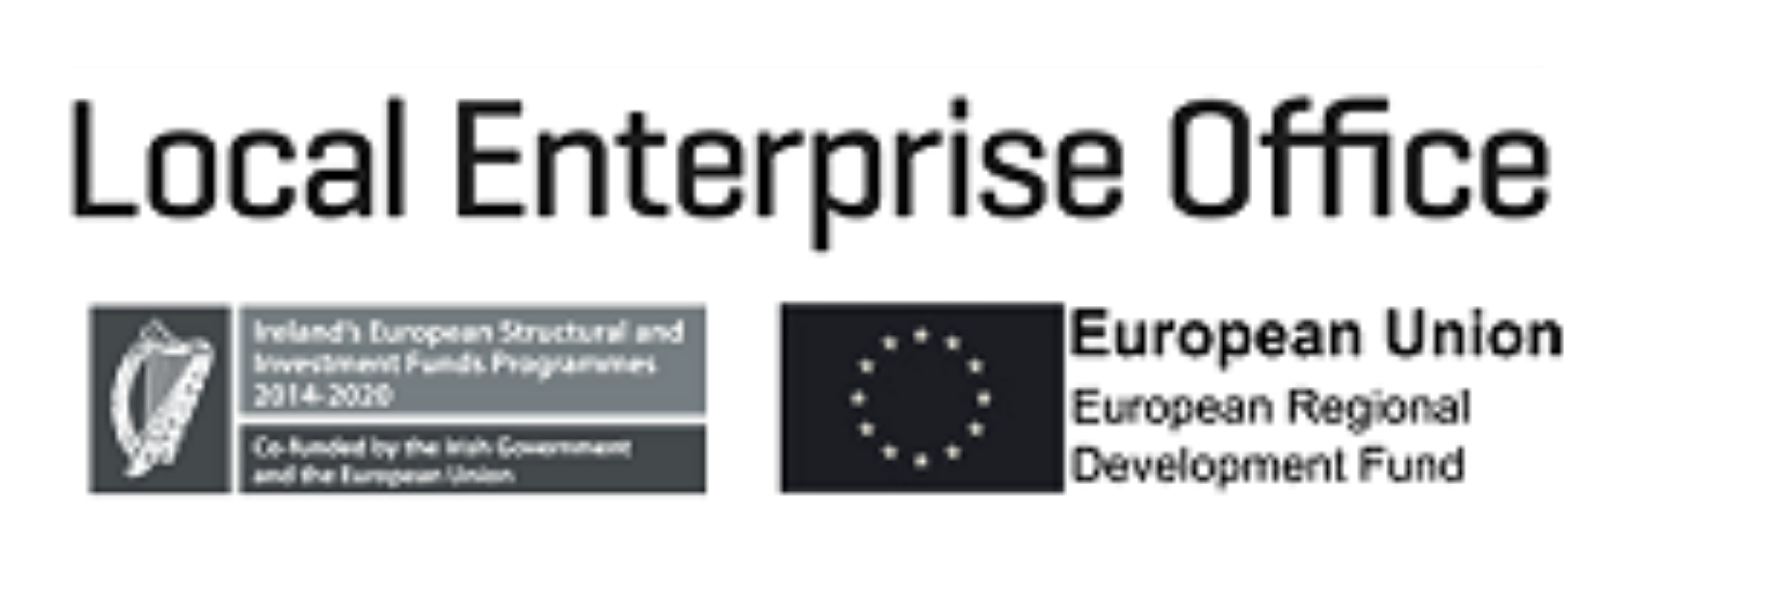 This is the Local Enterprise Office logo.